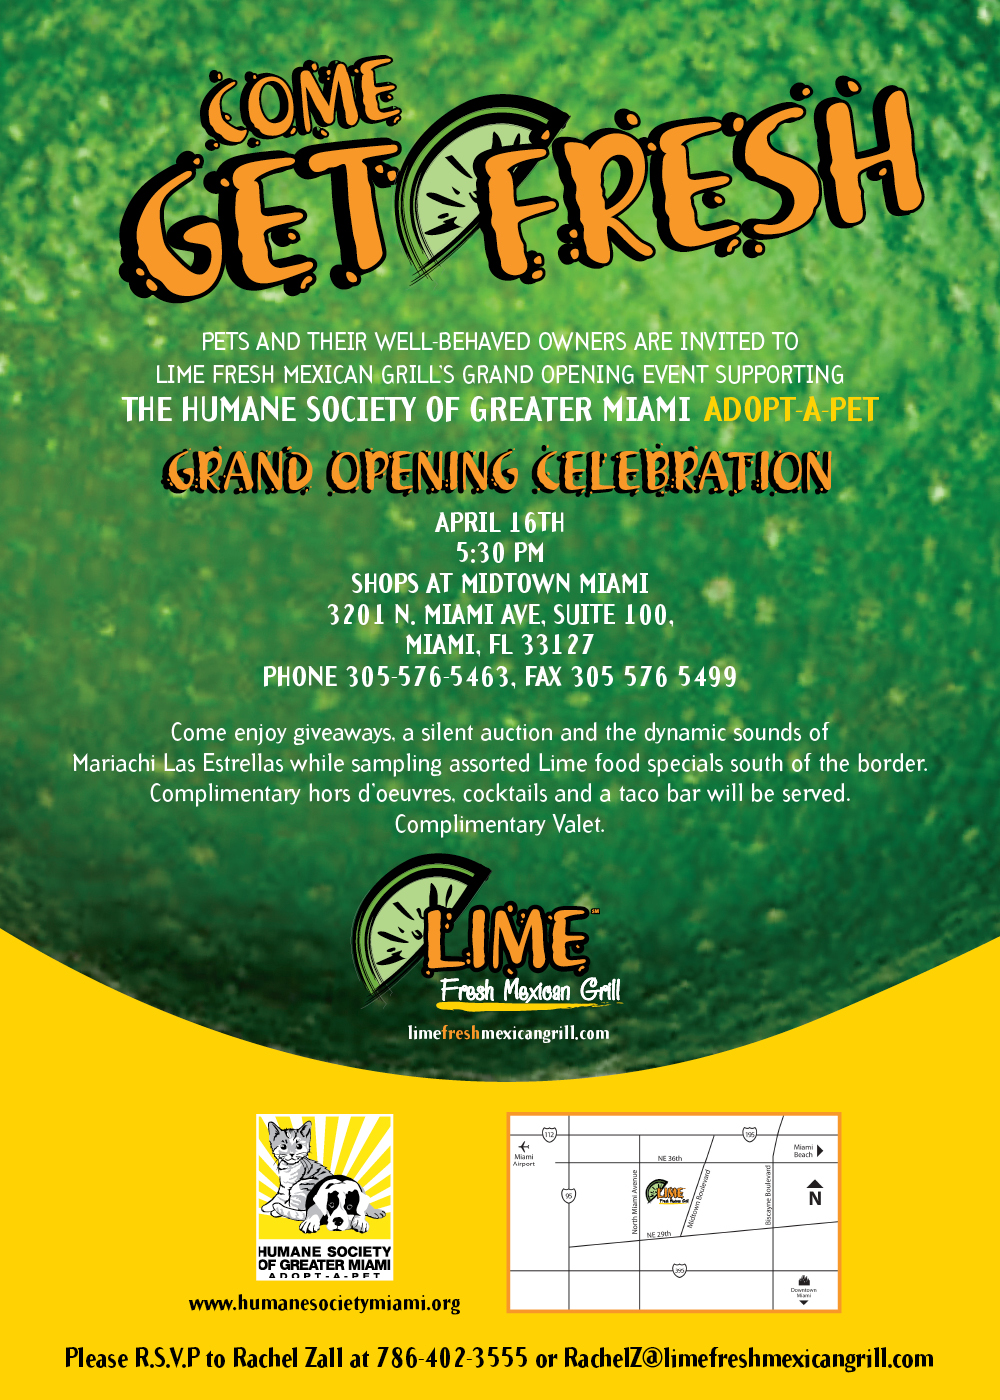 lime fresh mexican grill supports the humane society miami pet lime fresh mexican grill supports the humane society miami pet sitting and dog walkers grove pet service